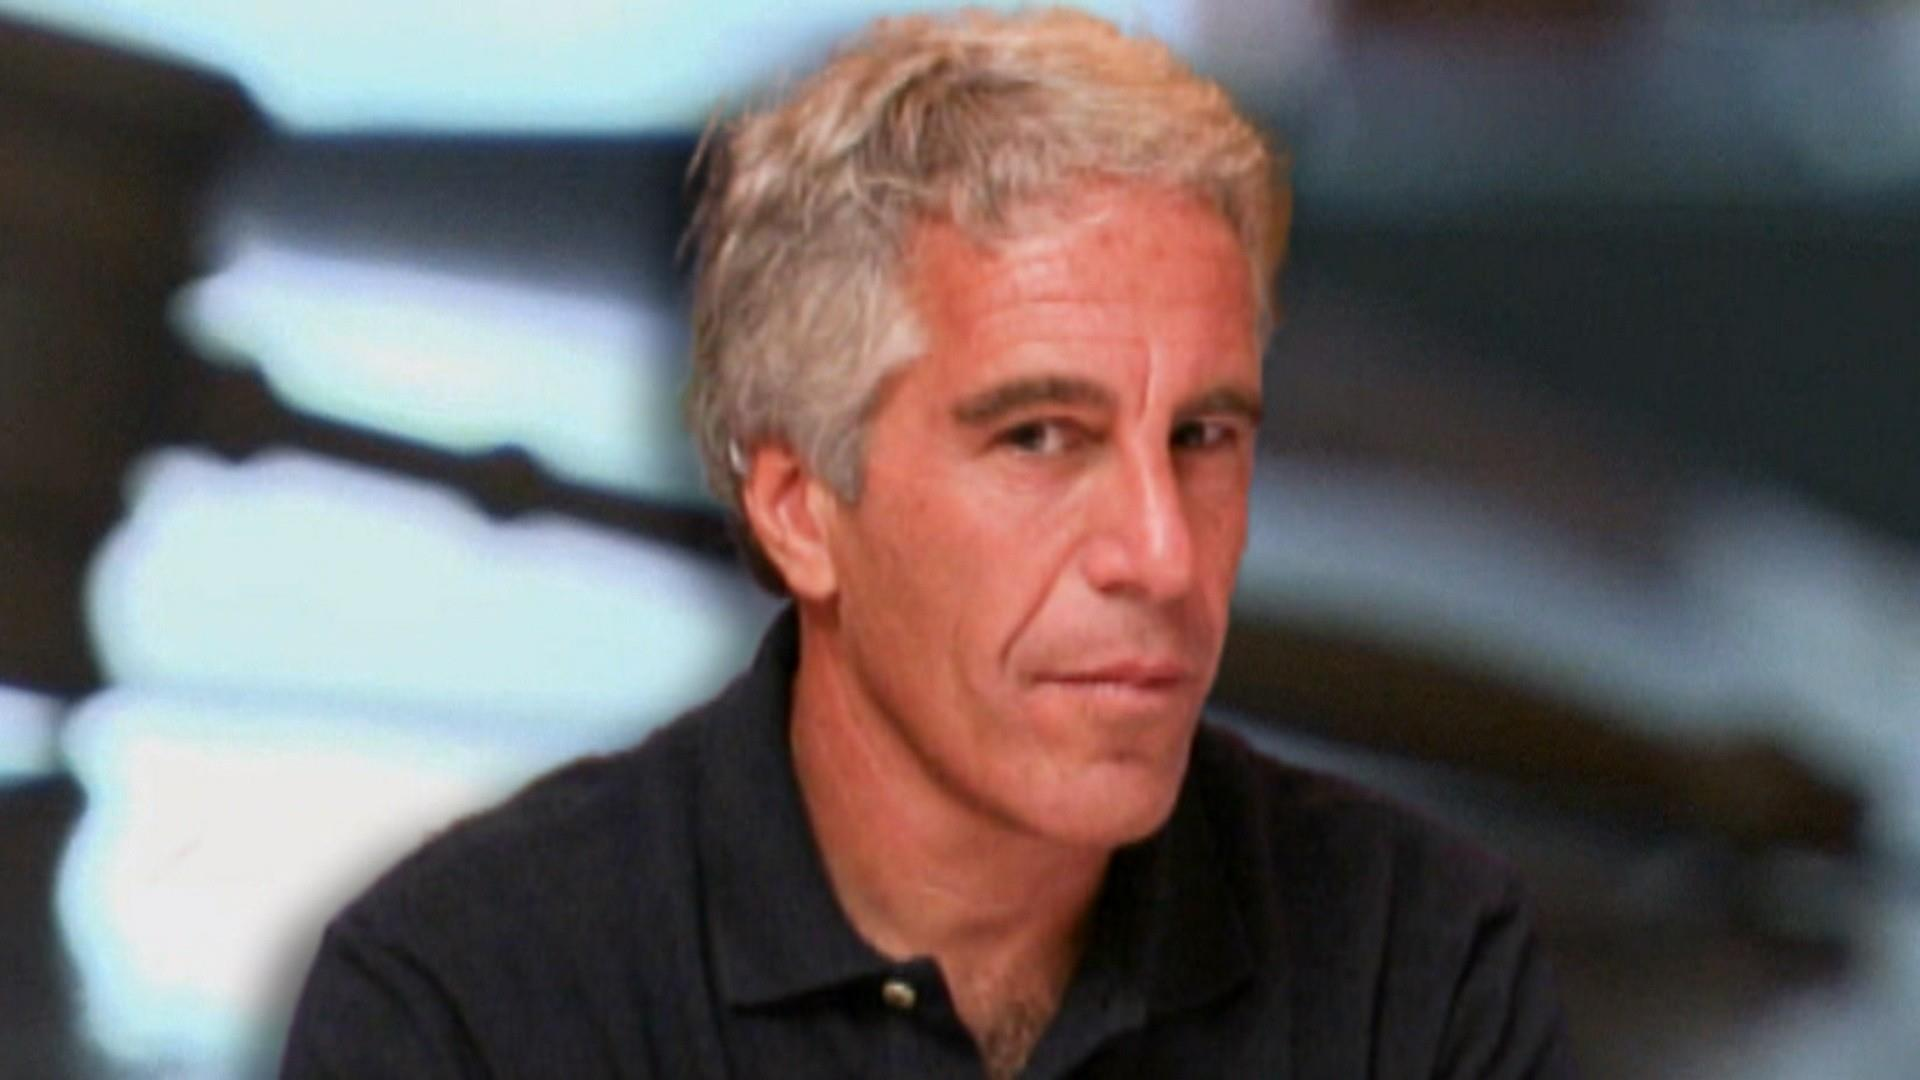 Judge: Prosecutors broke law in deal with sex offender Jeffrey Epstein